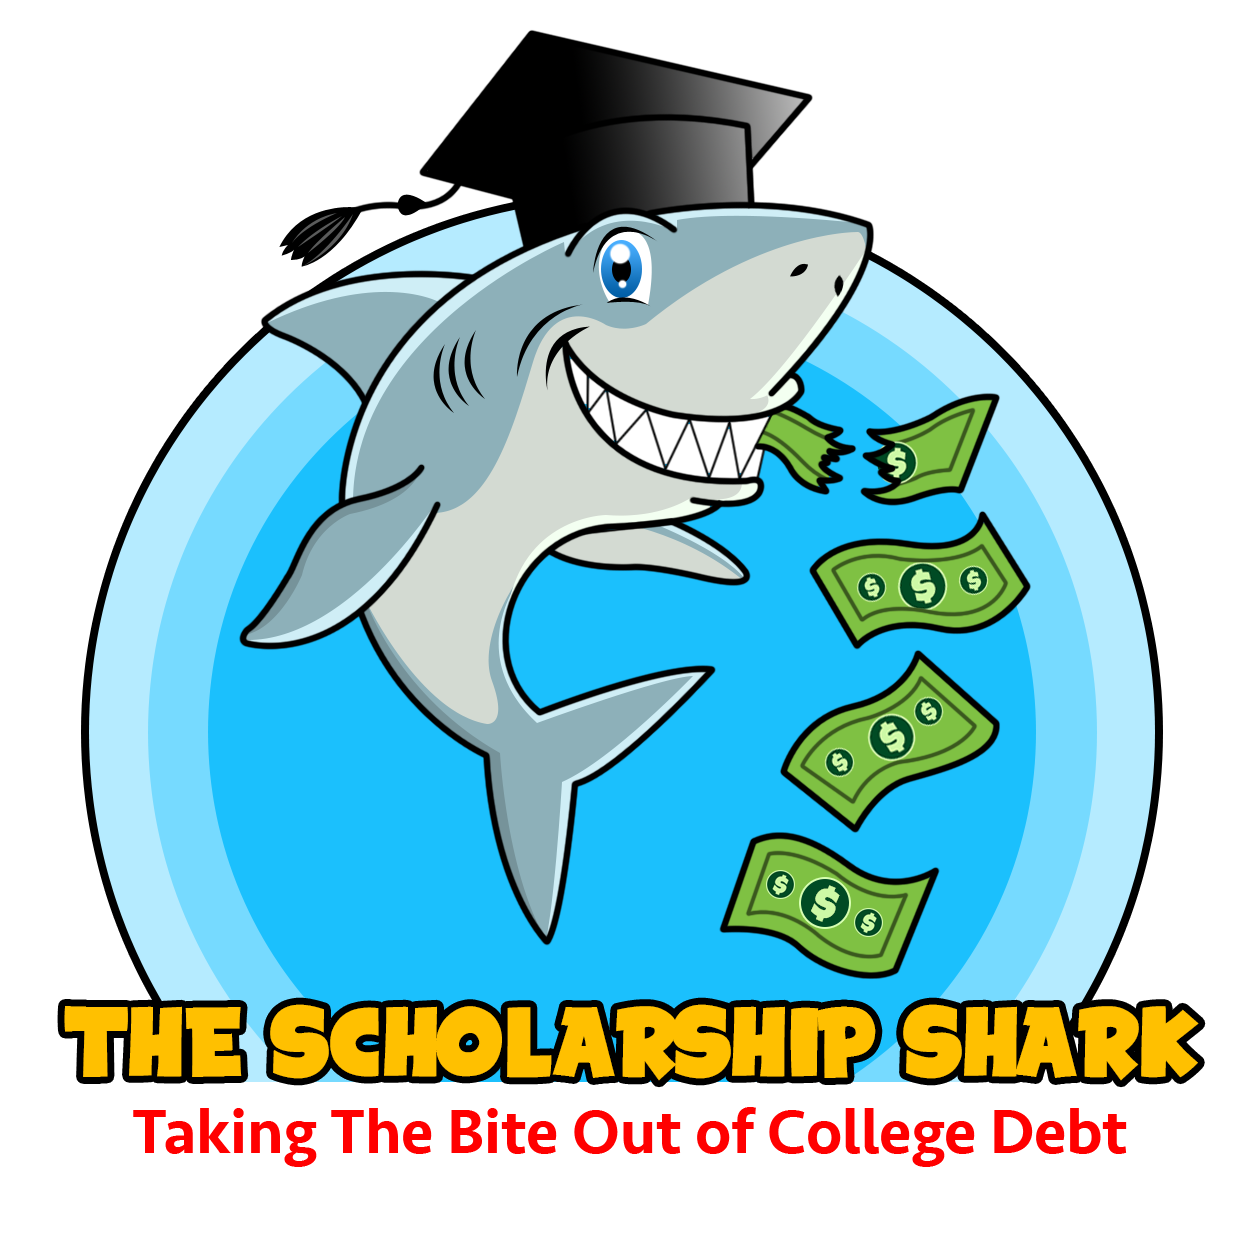 The Scholarship Shark